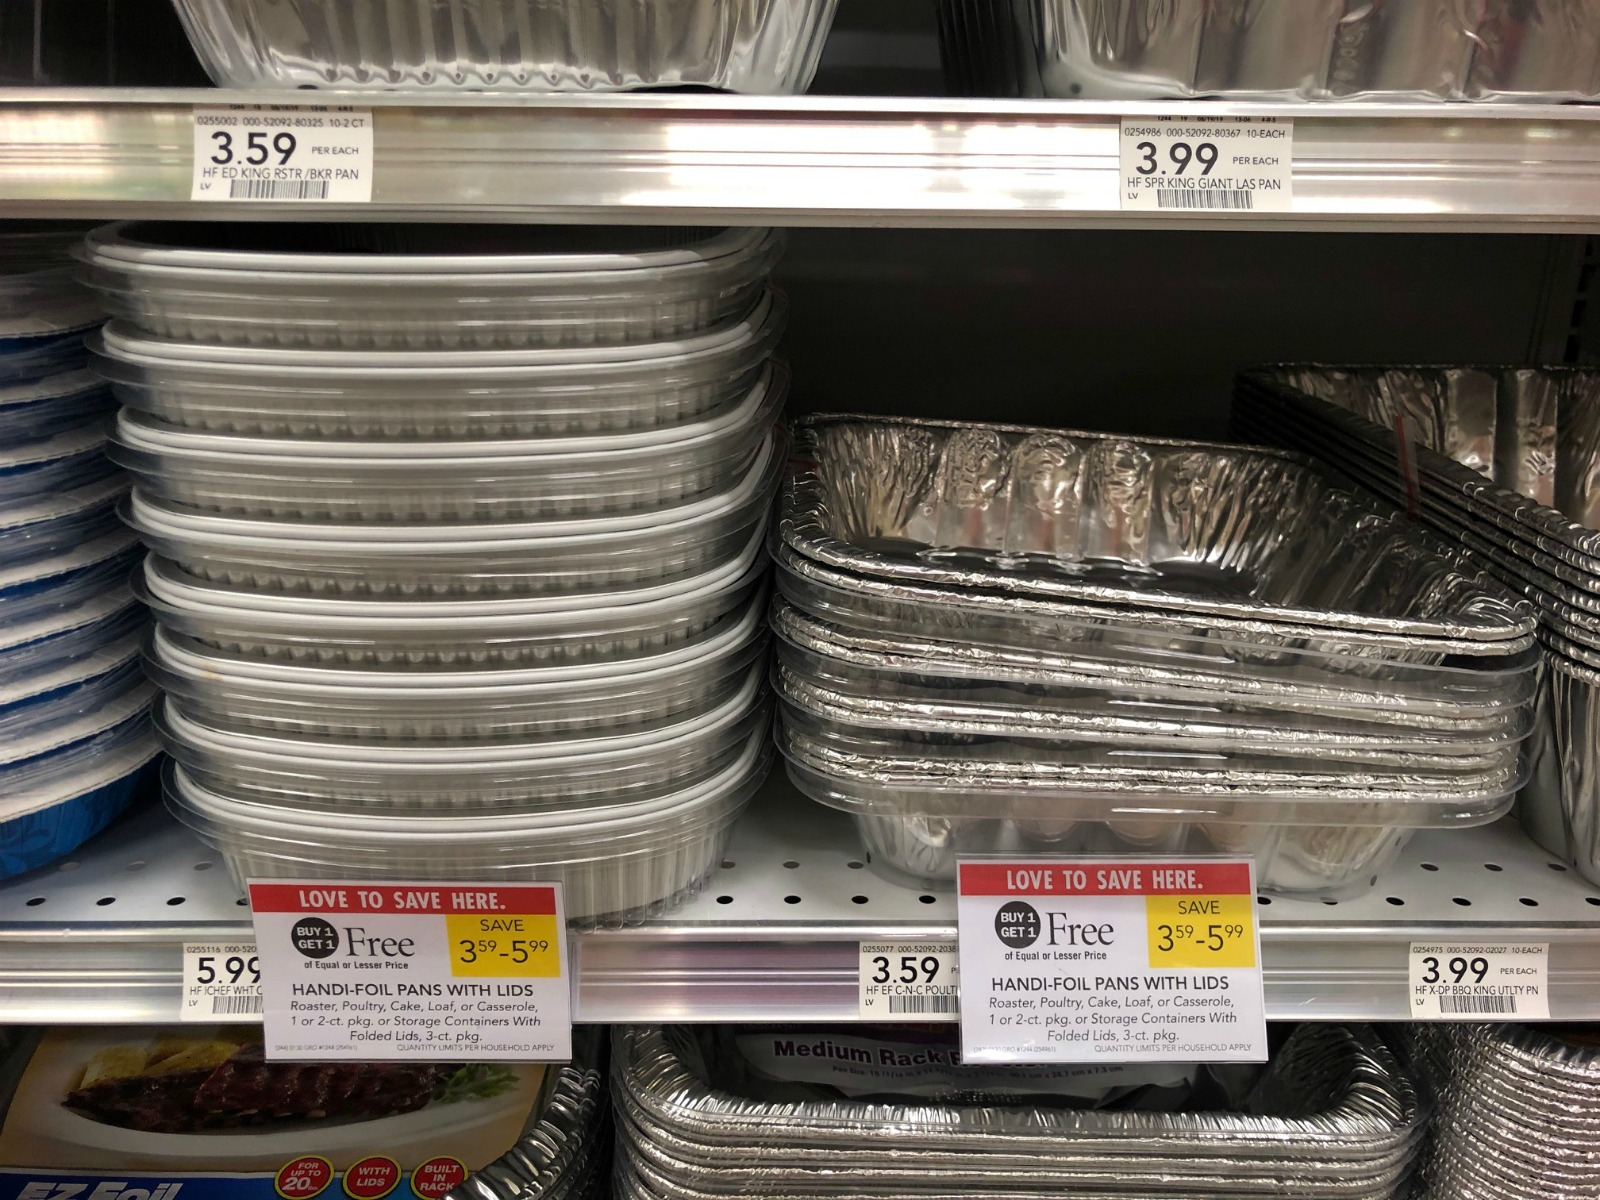 Get A Package Of Handi-Foil Pans As Low As FREE At Publix on I Heart Publix